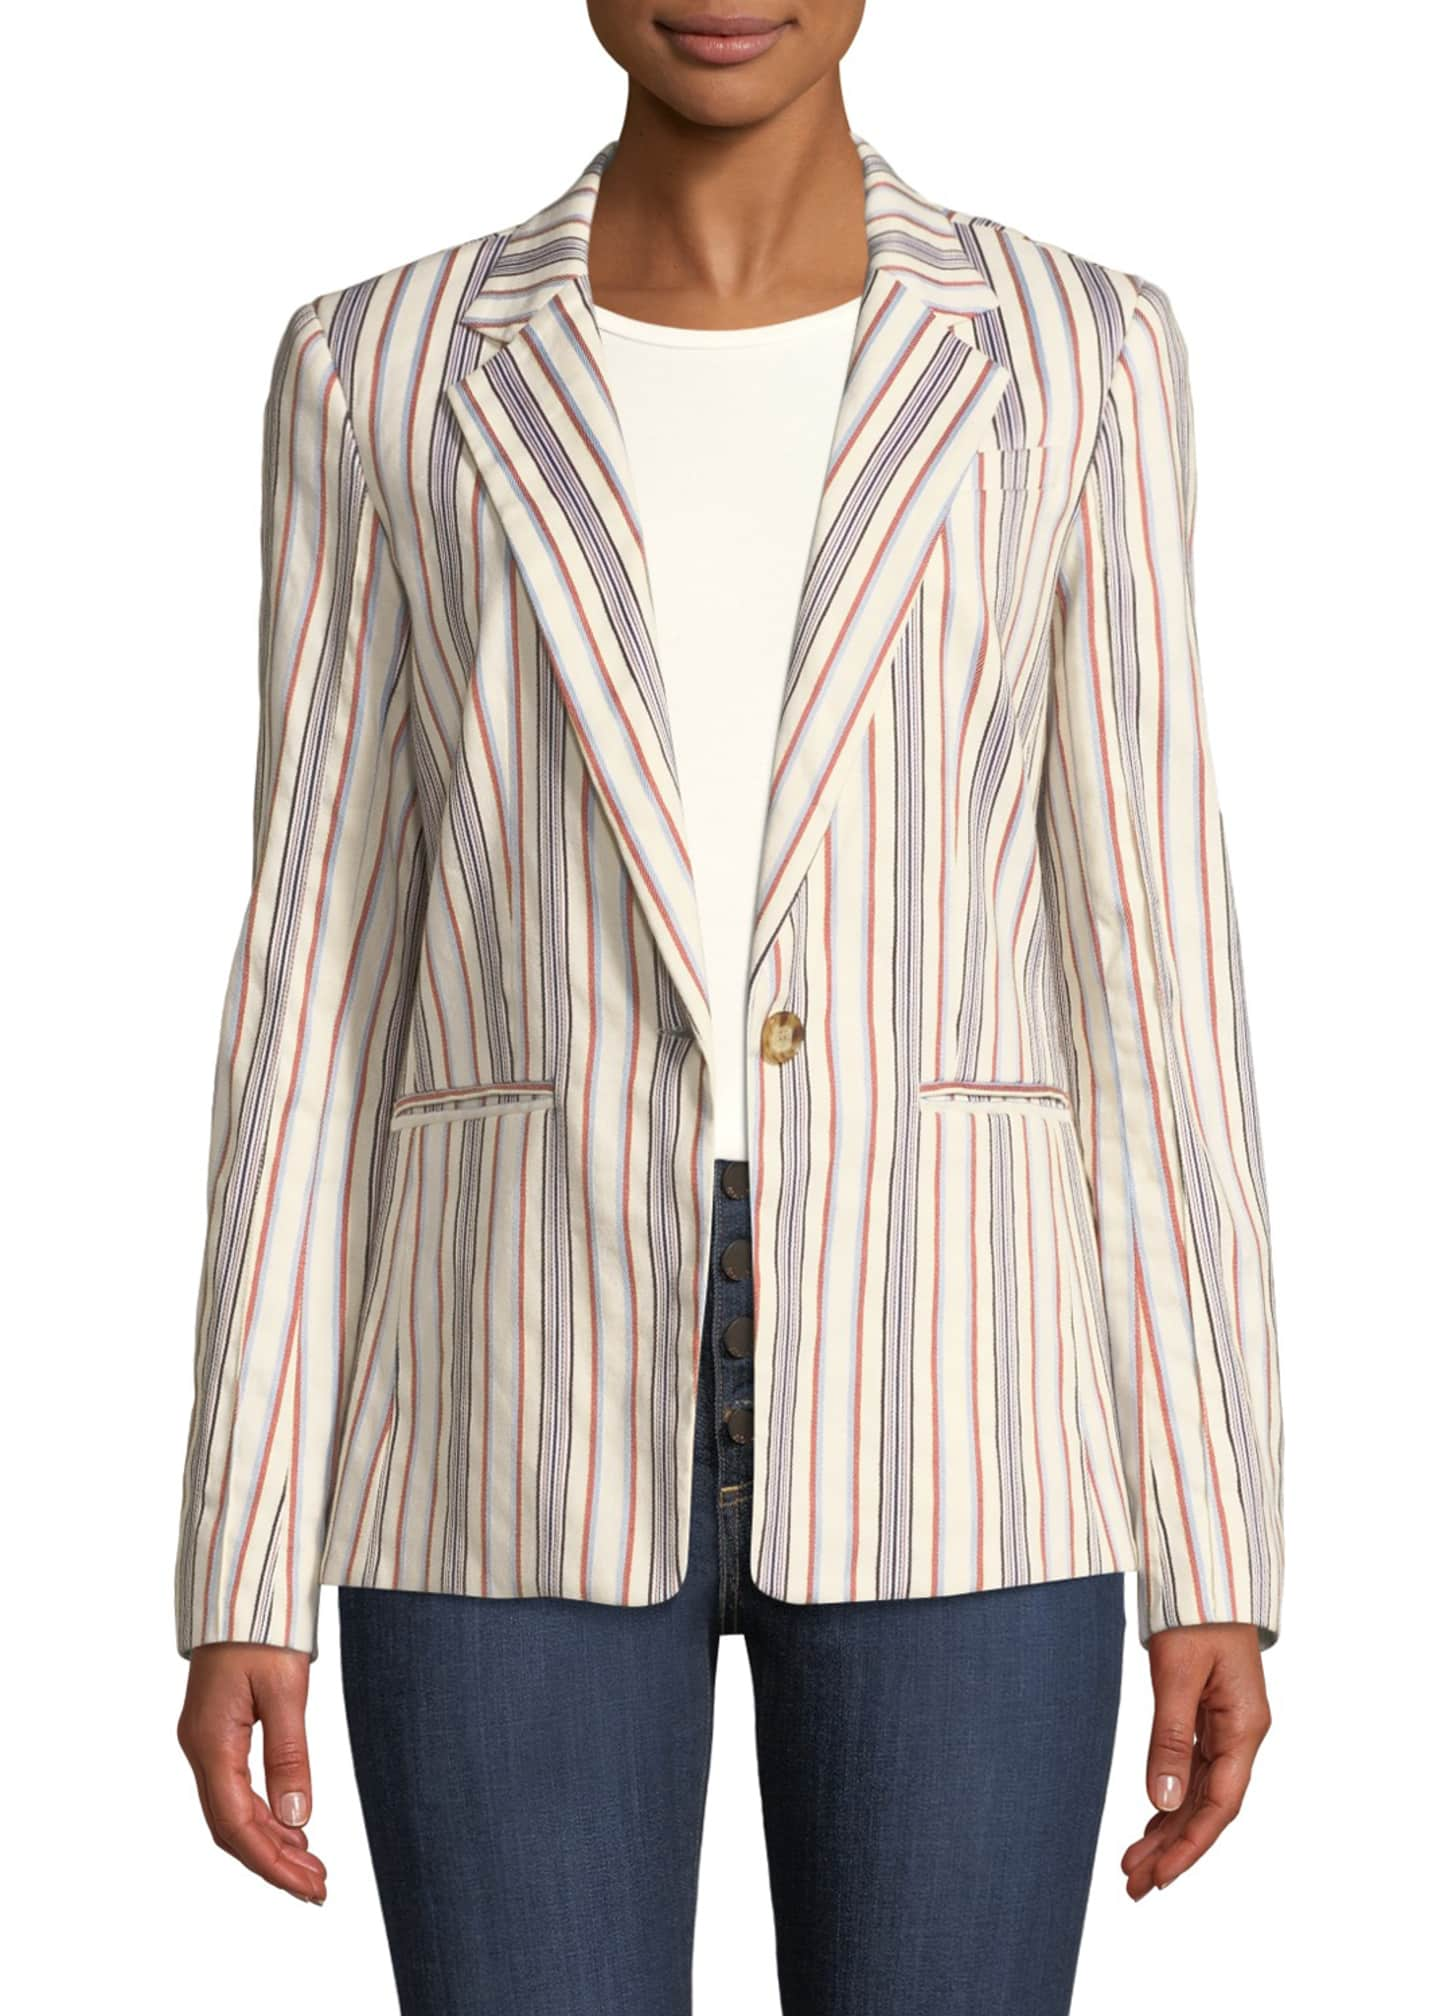 Derek Lam 10 Crosby One-Button Striped Blazer Jacket